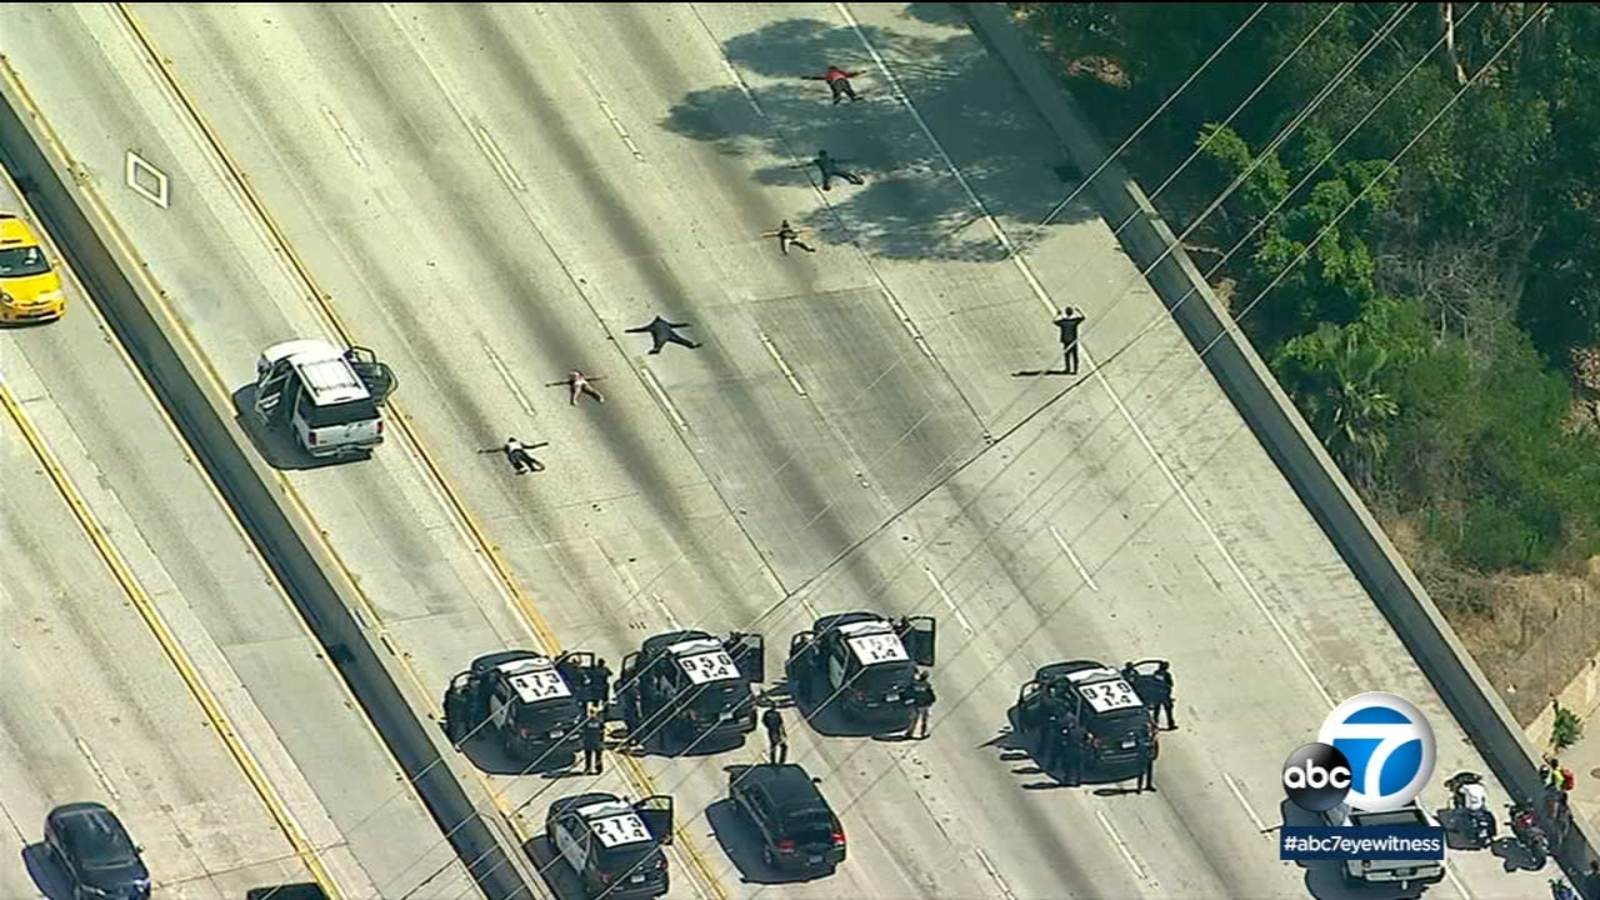 Chase shuts down SB 405 Freeway in Westchester